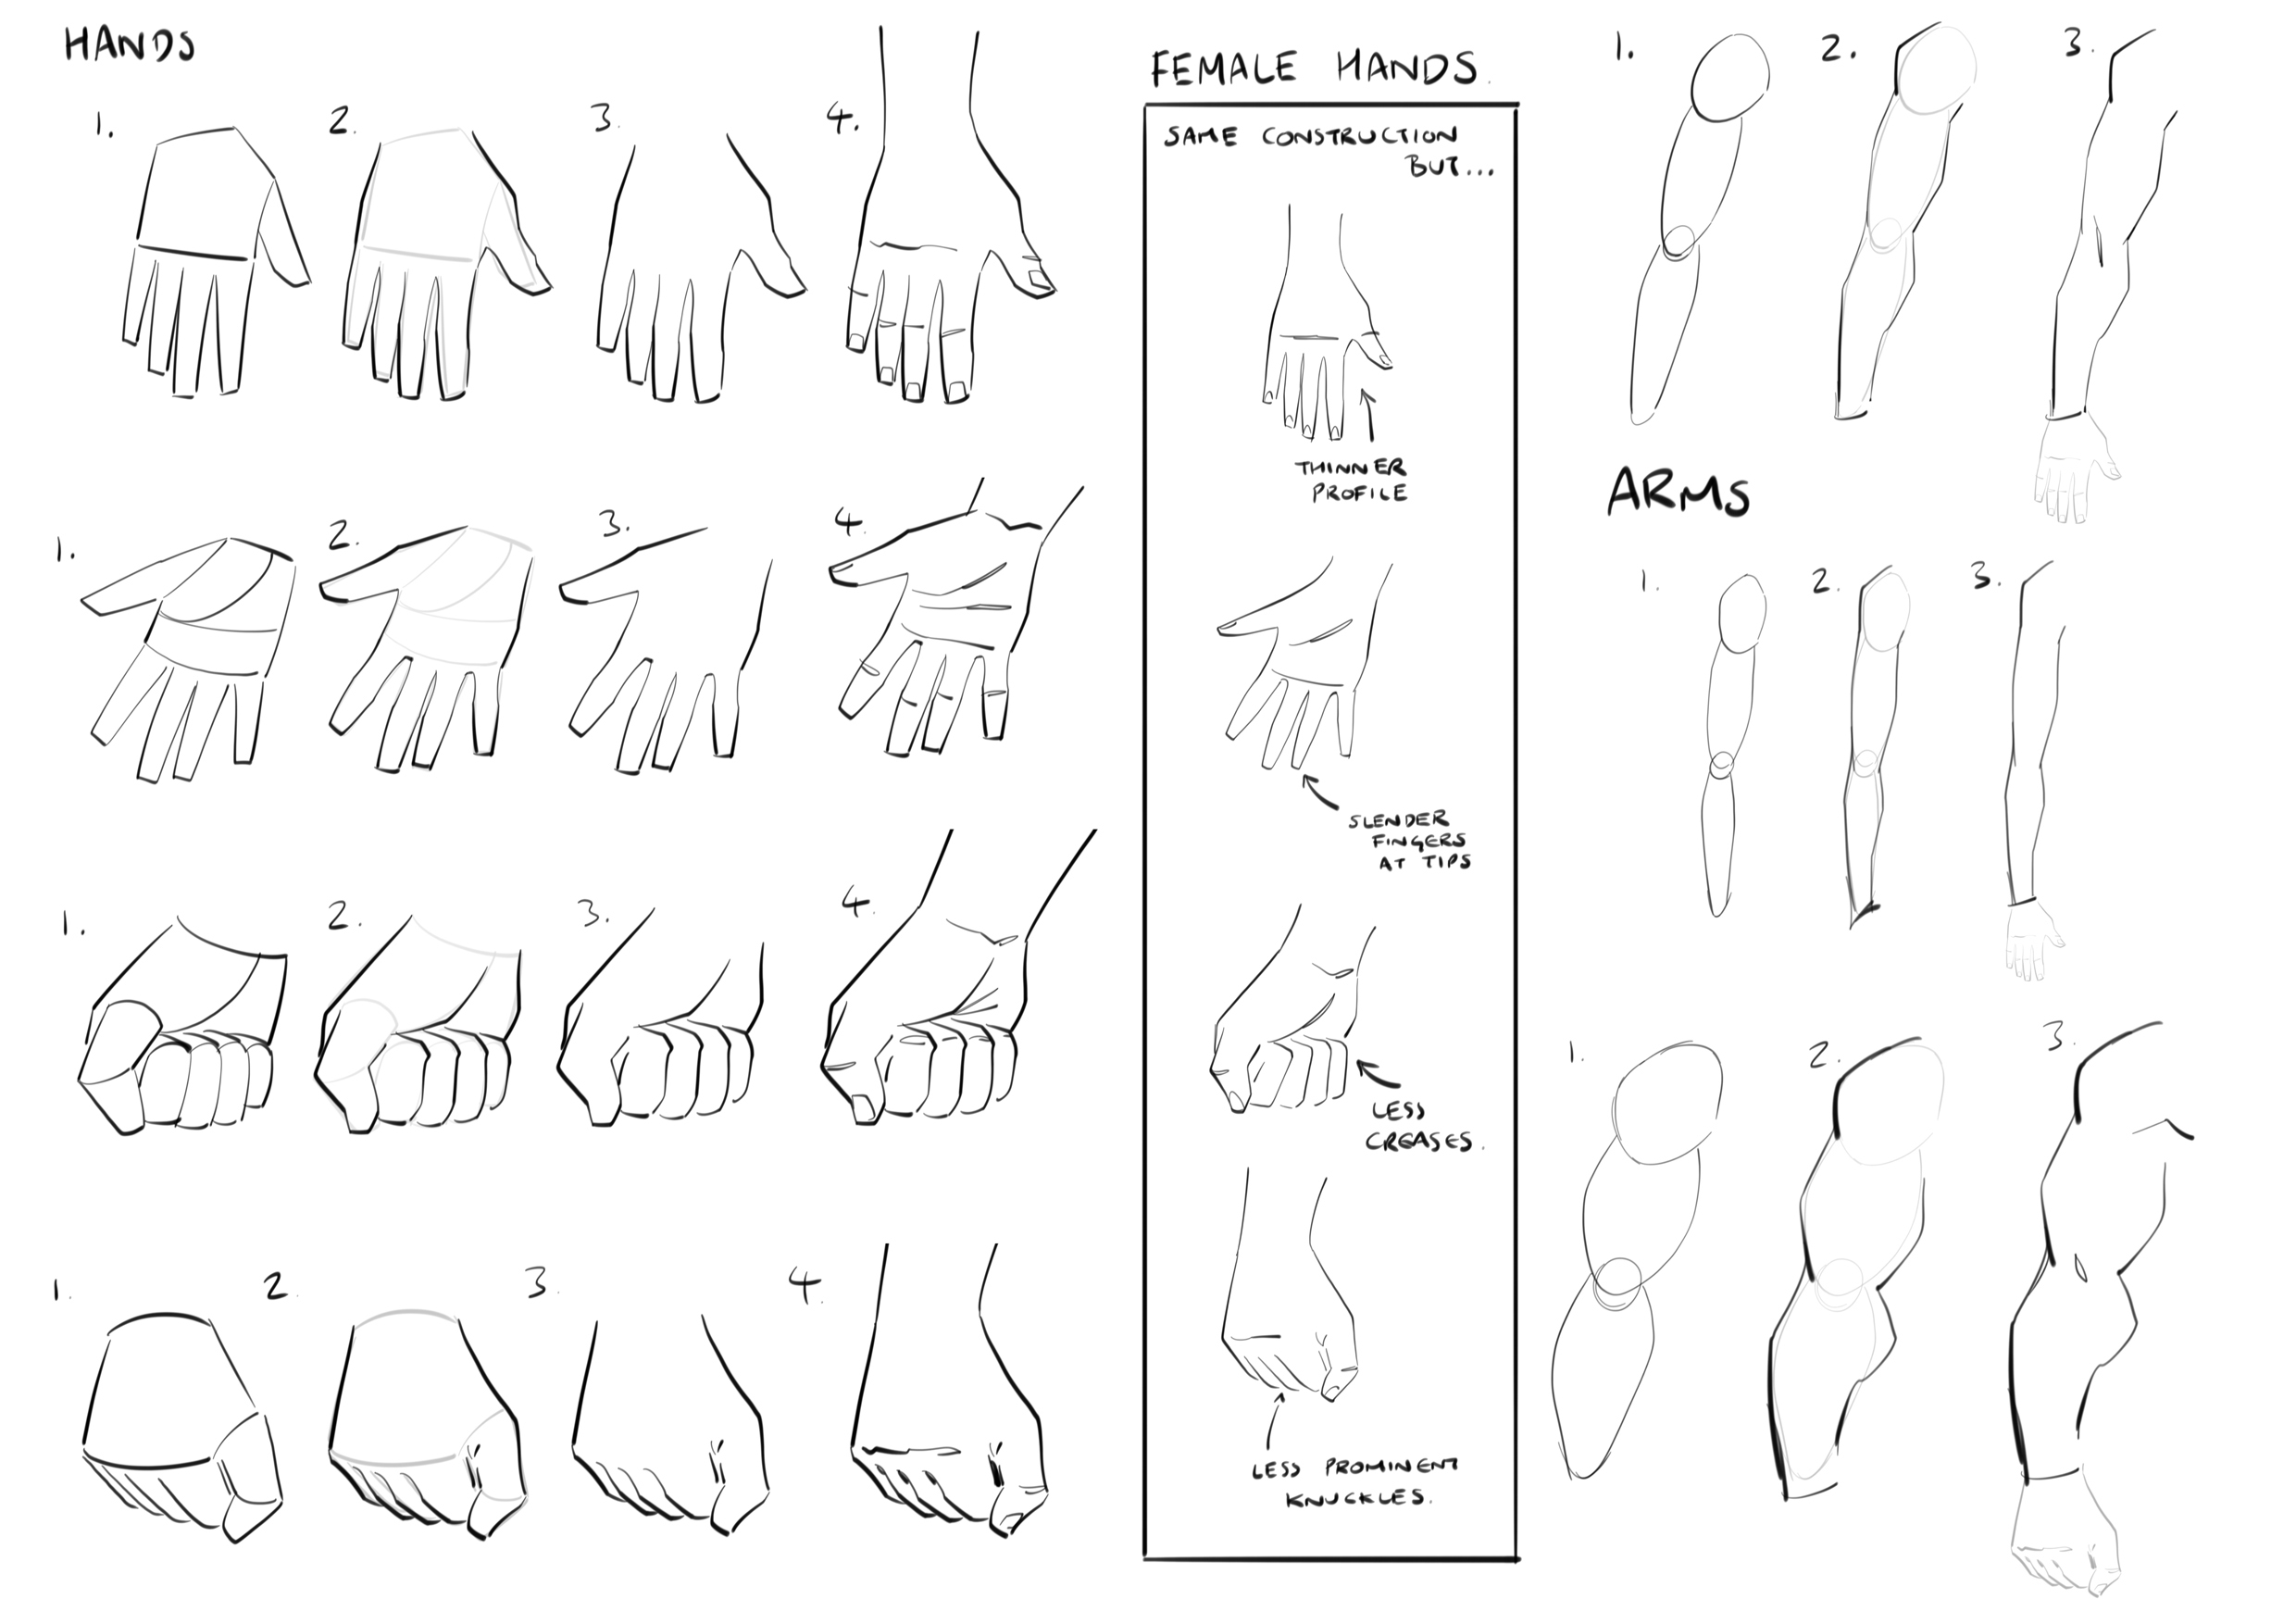 How to draw hands by Robert Deas